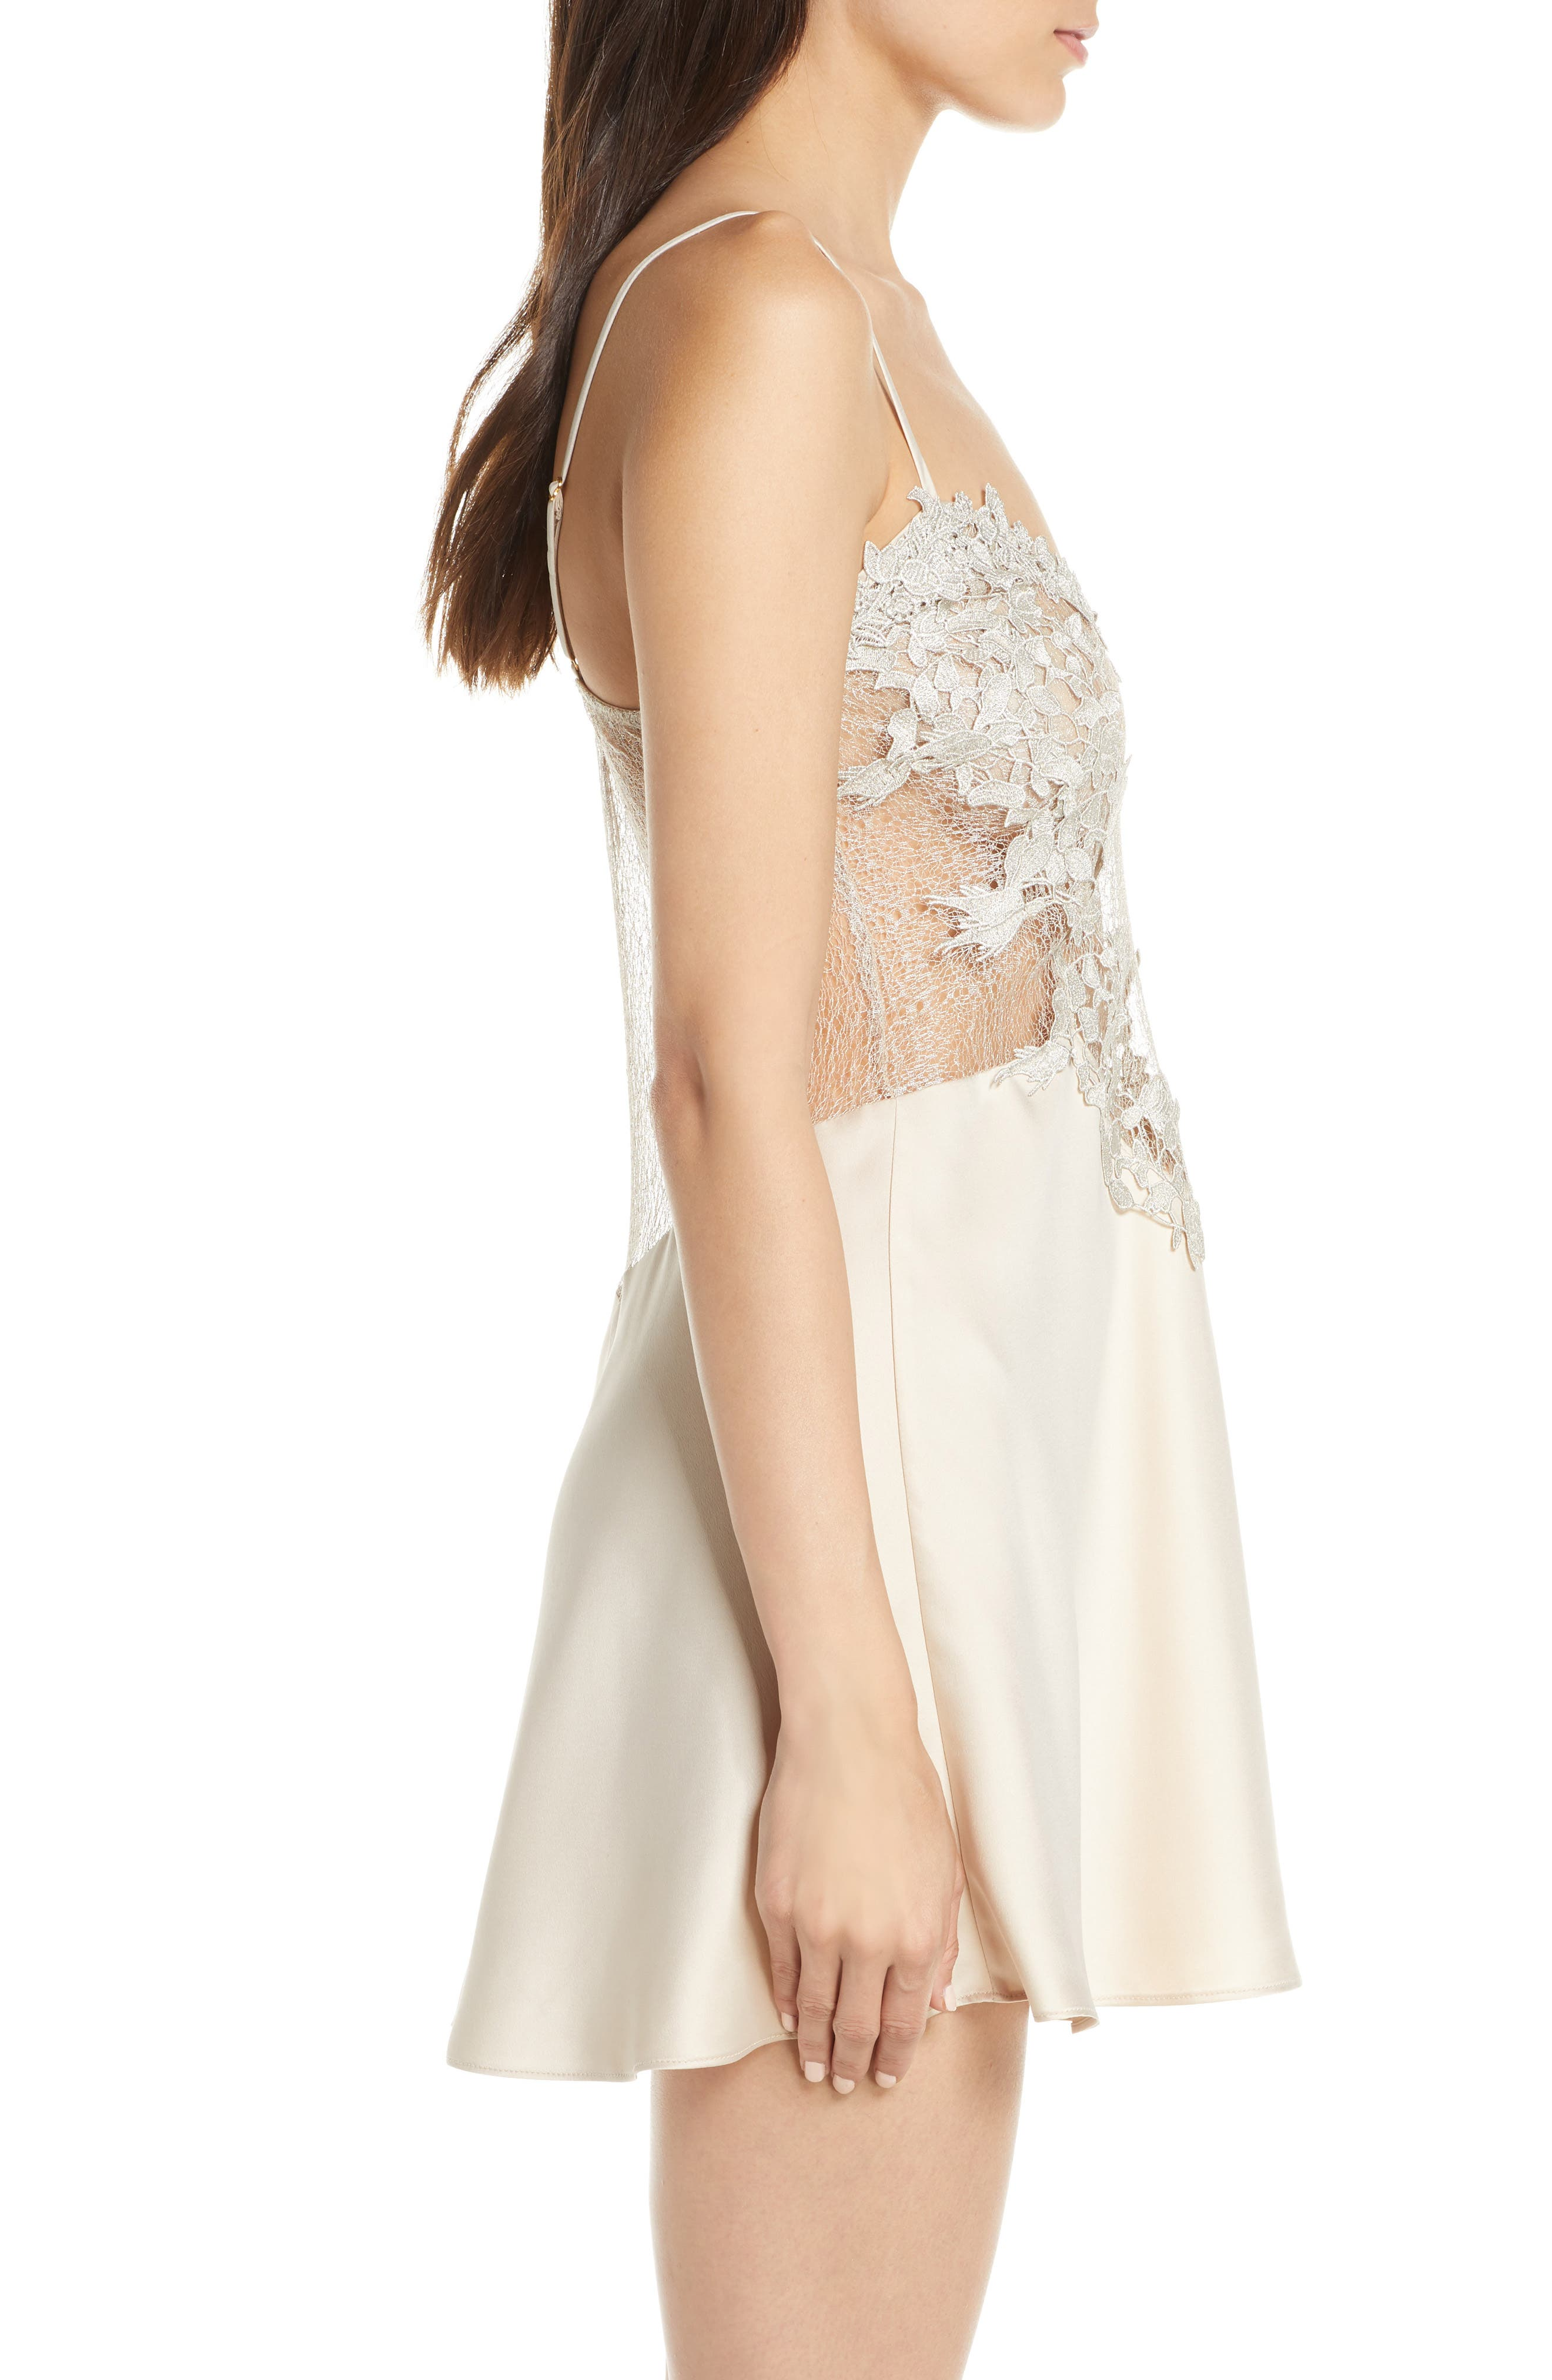 FLORA NIKROOZ, Showstopper Chemise, Alternate thumbnail 3, color, CHAMPAGNE